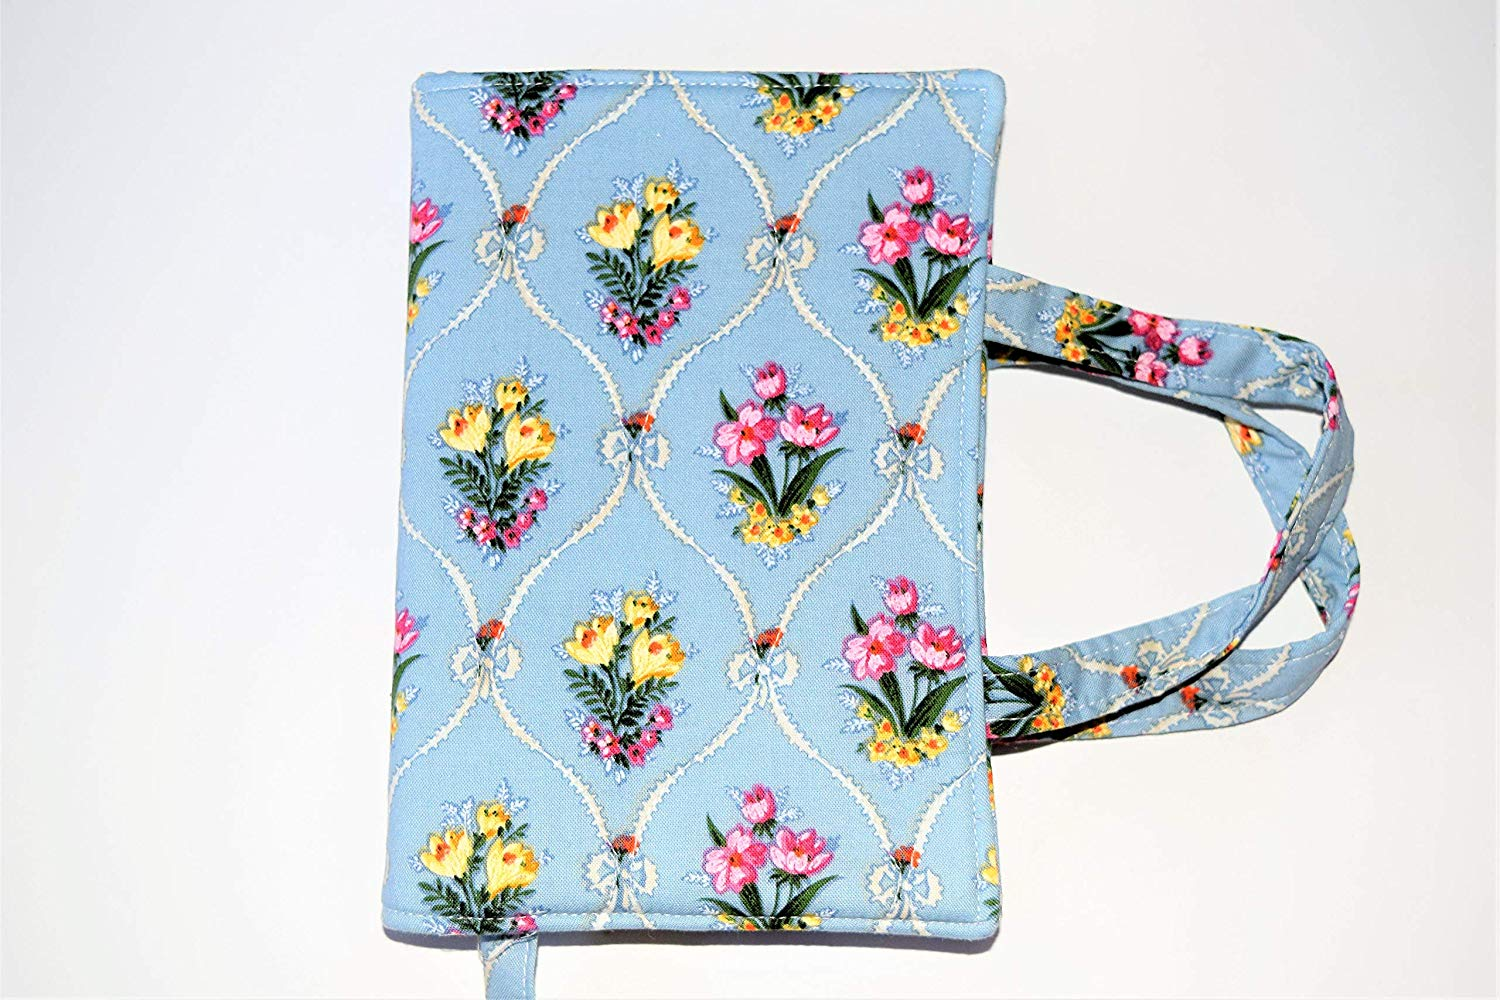 "Flower Bouquet Quilted Paperback Romance Small Book Cover fits up to 7.5"" x 5.25"" x .5 to 1"", Carry Strap Handles,Attached Bookmark,LAST ONE"